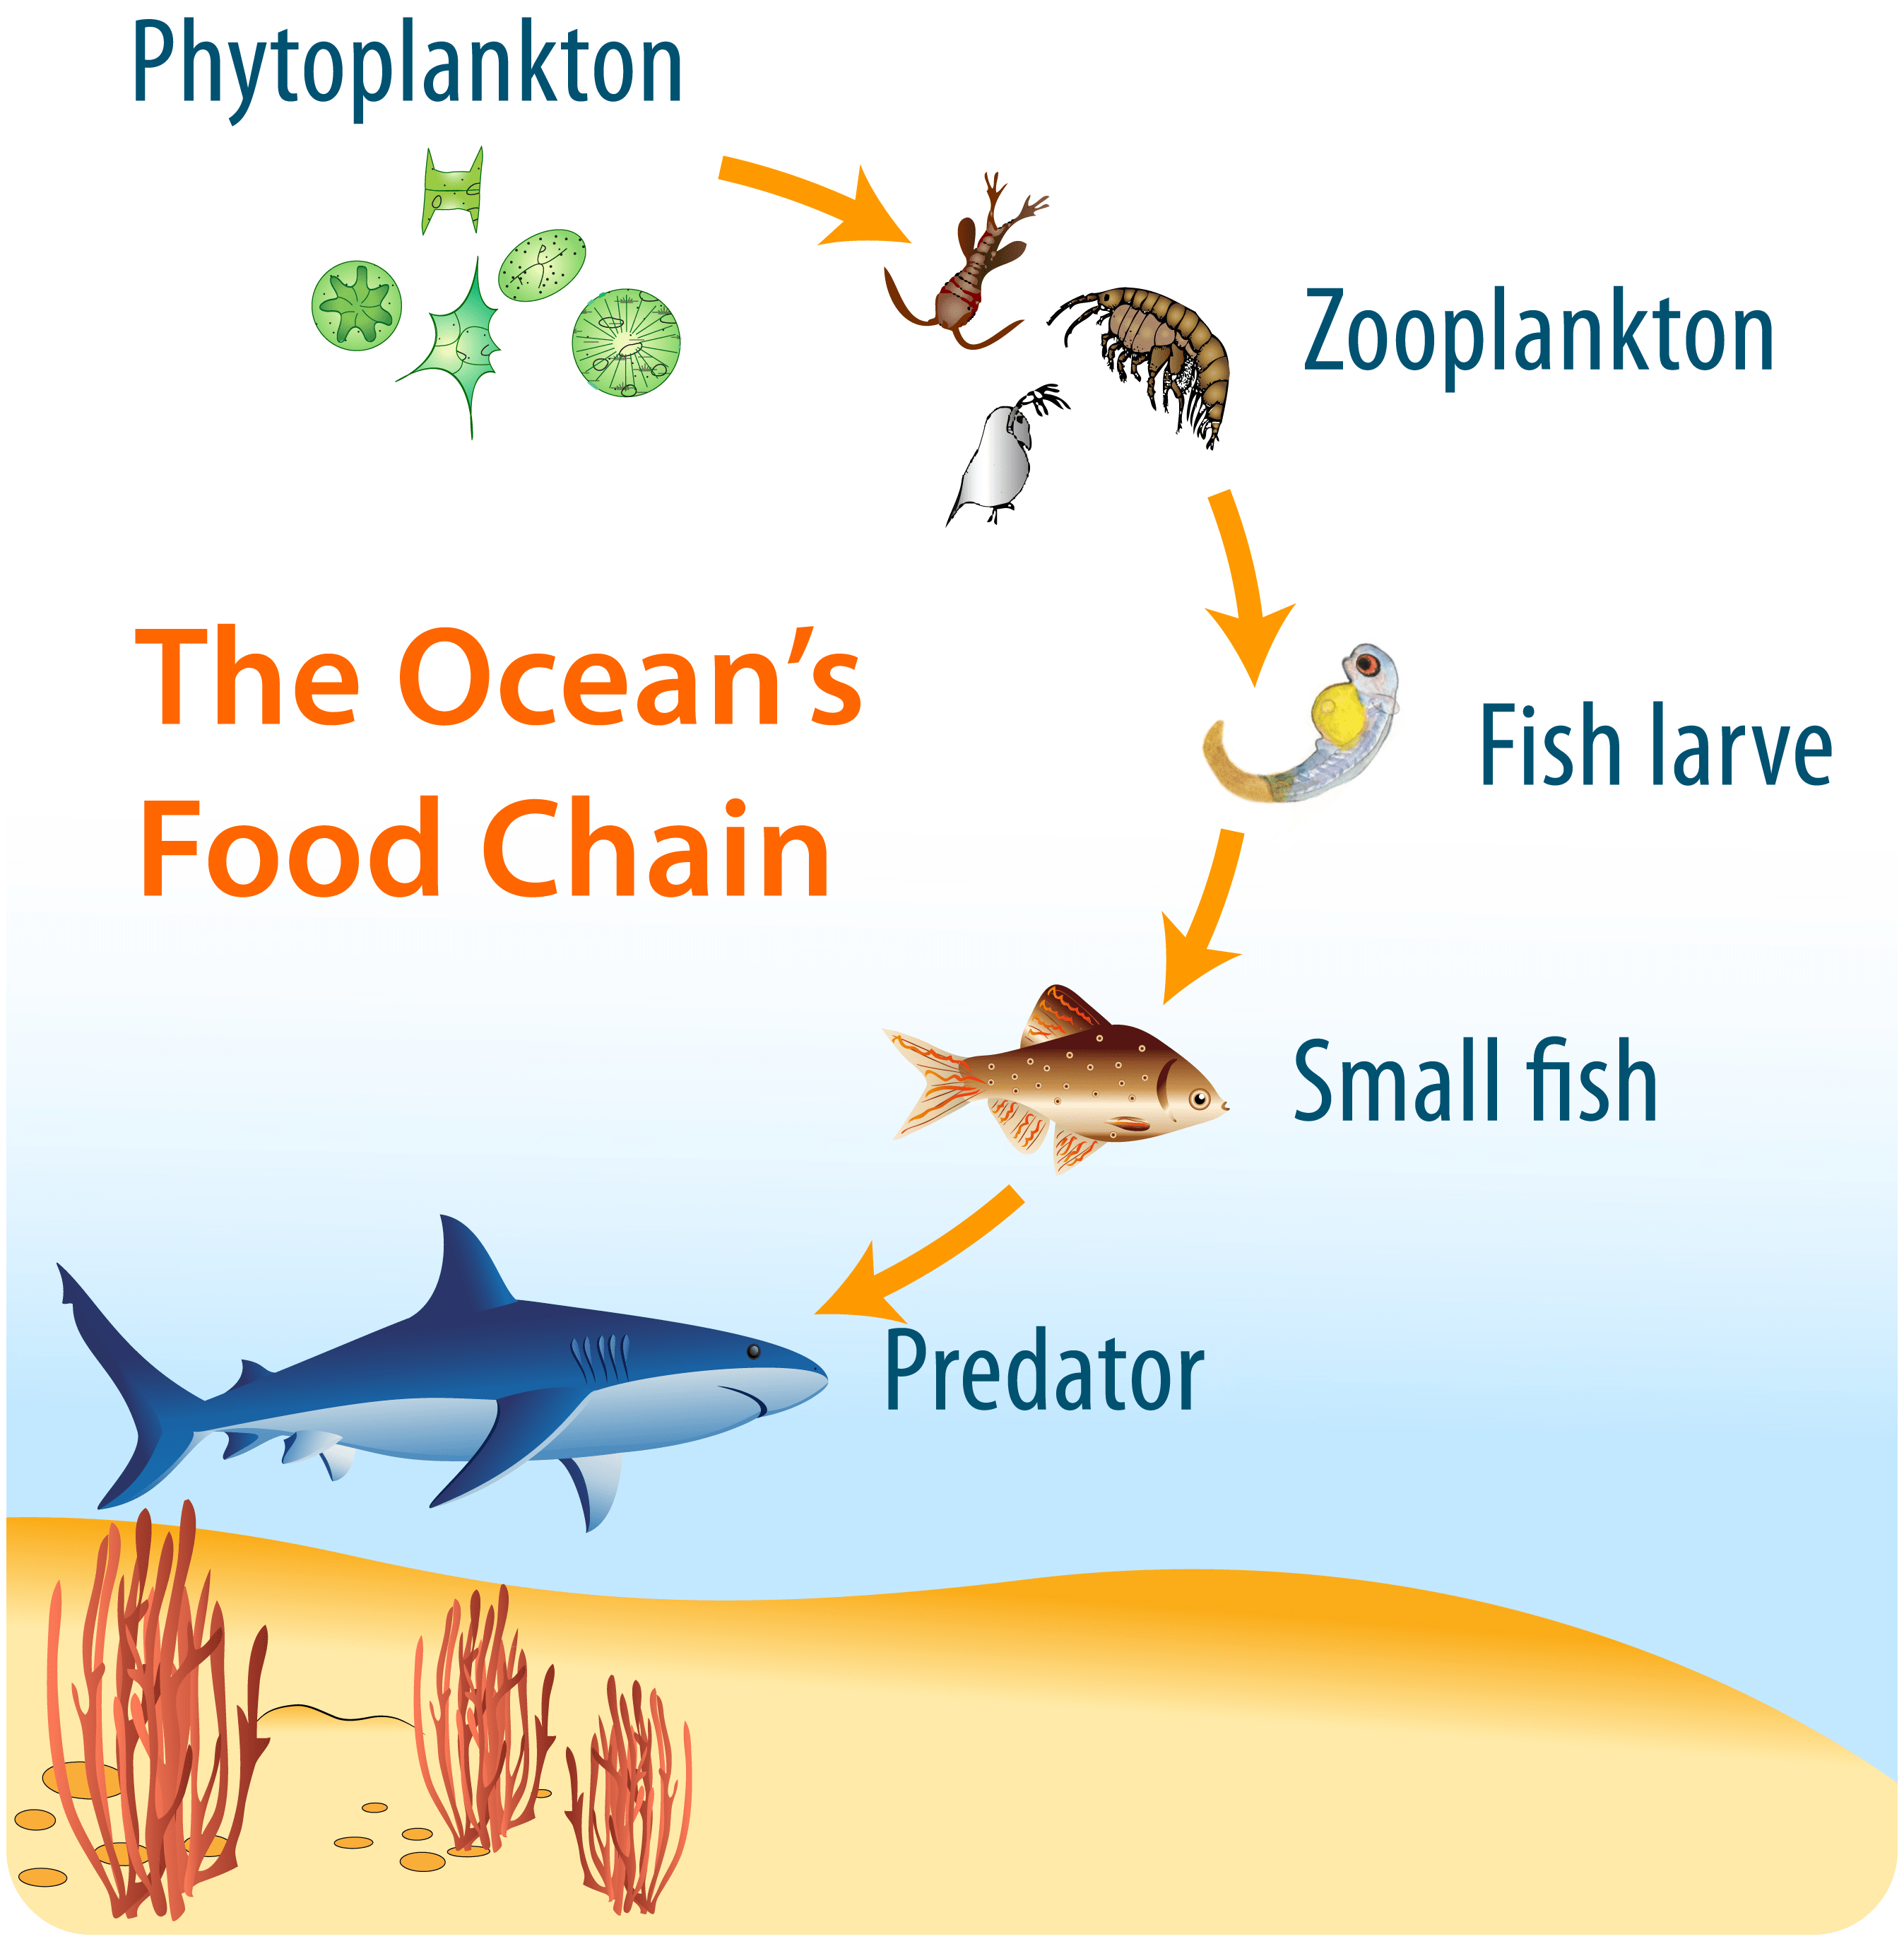 Phytoplankton In The Oceanic Food Chain